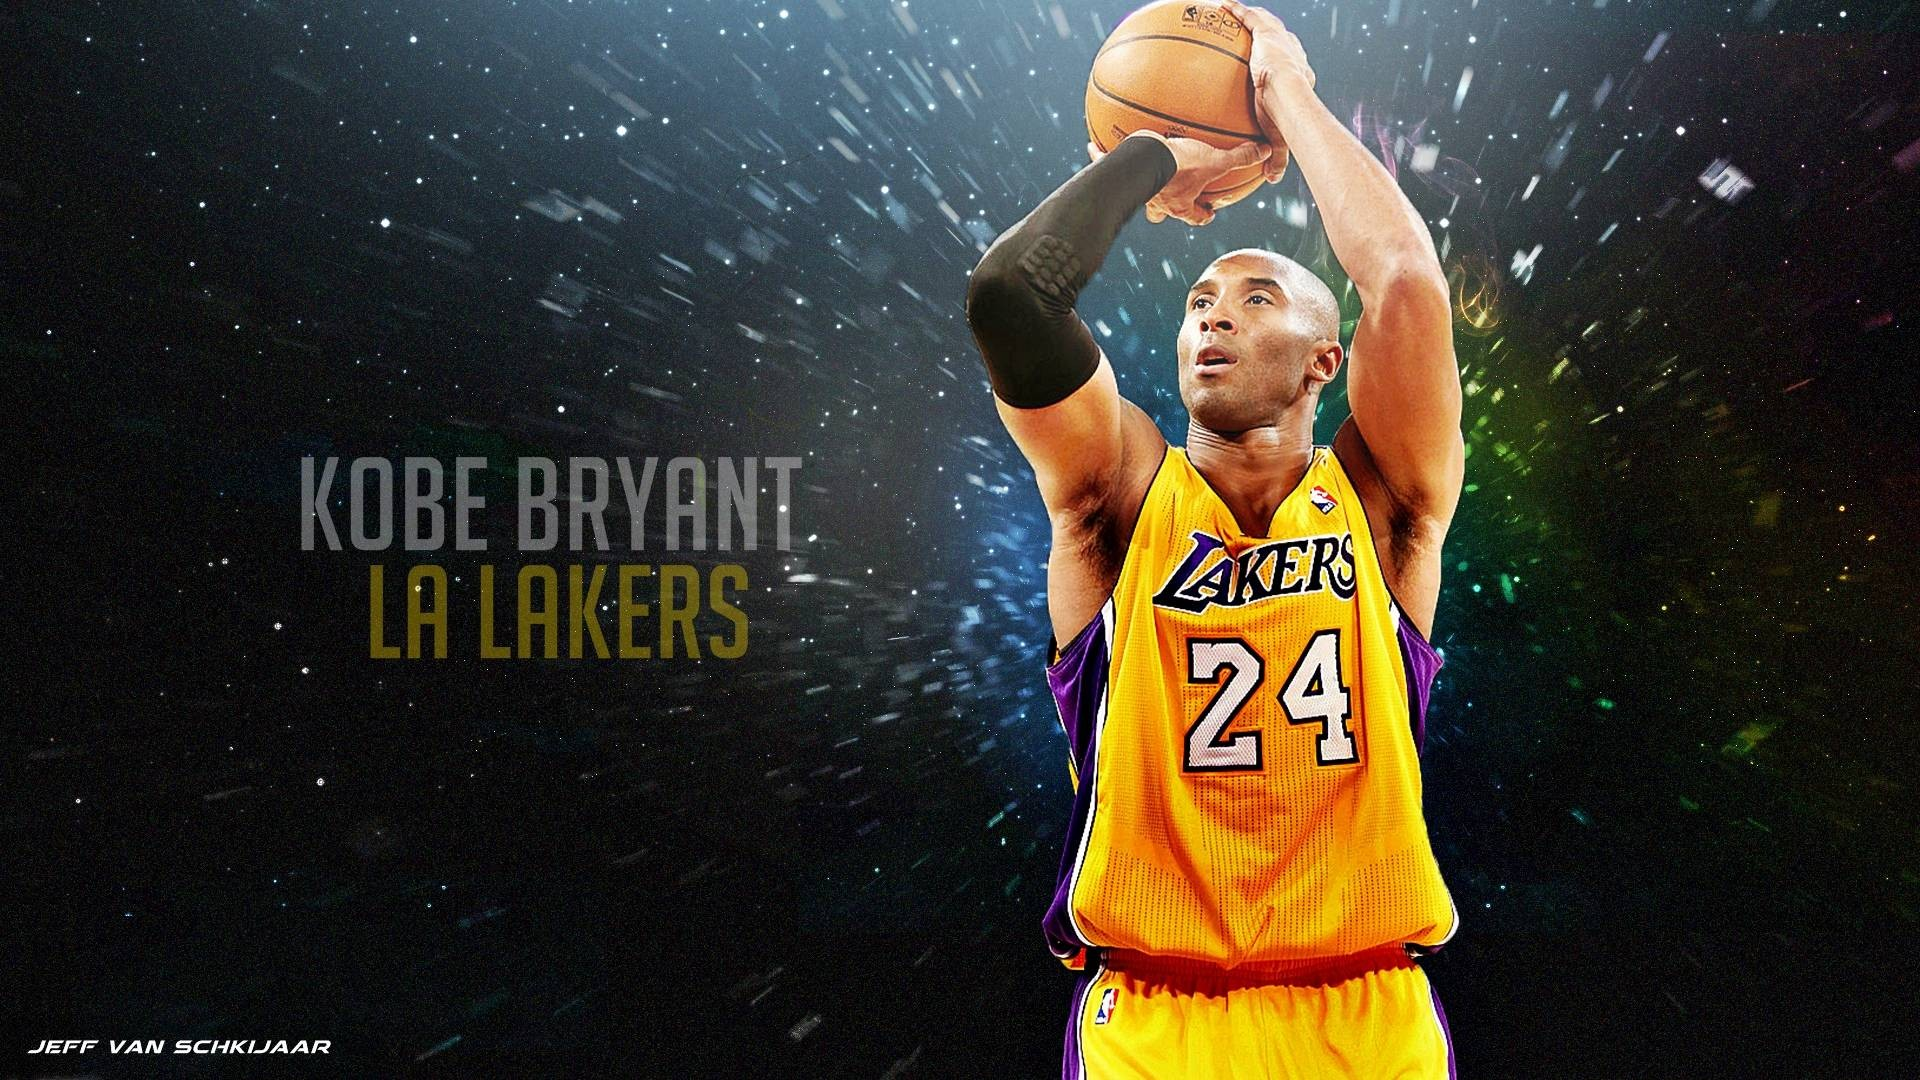 Kobe Bryant Wallpapers Mobile Is Cool Wallpapers